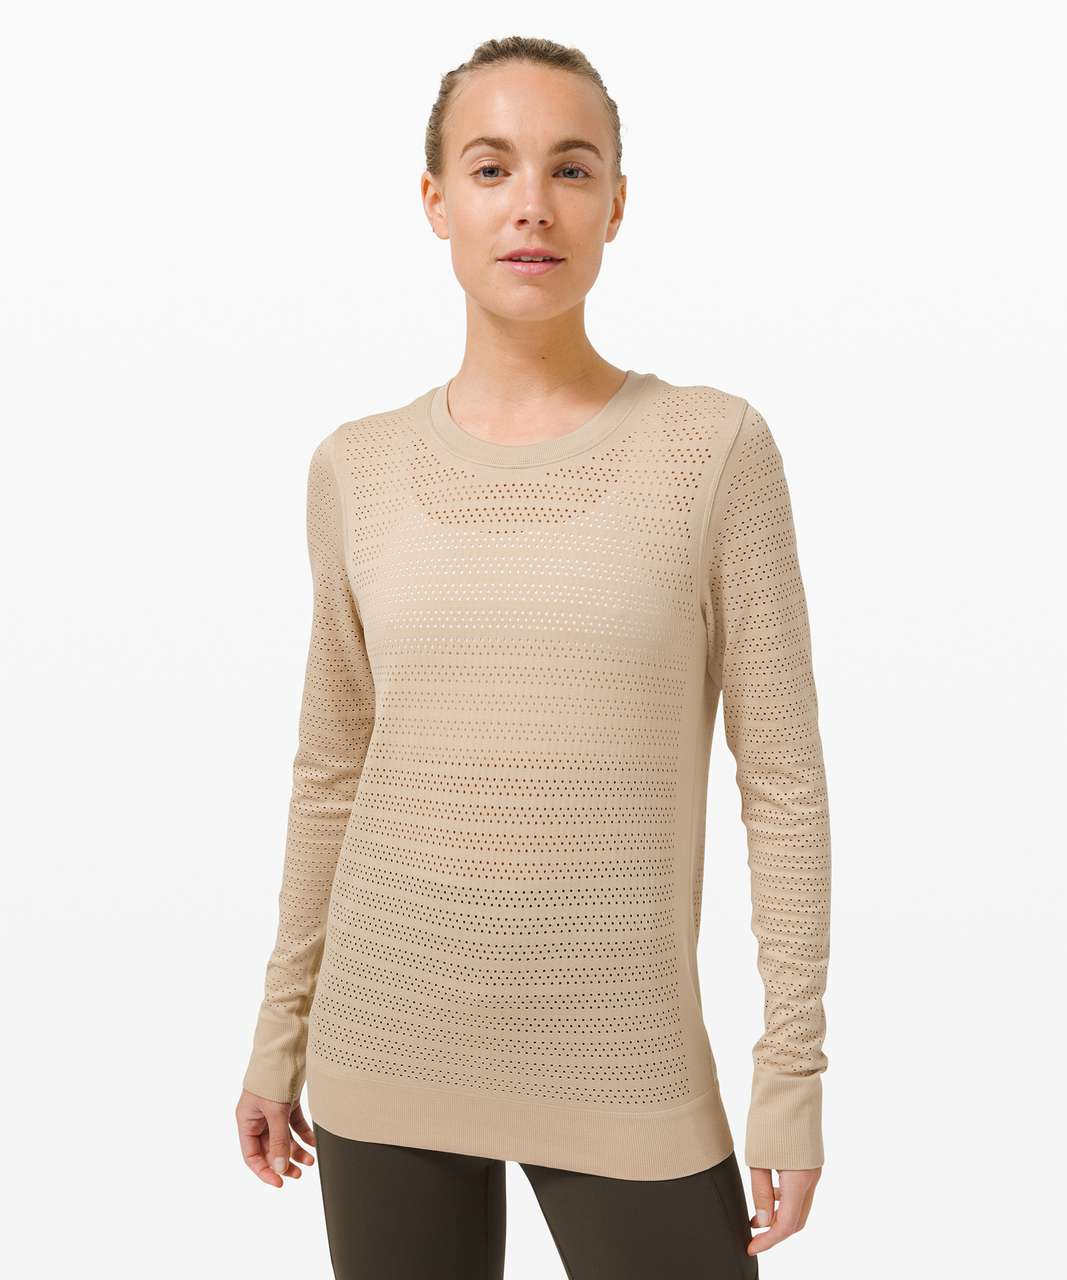 Lululemon Swiftly Breathe Long Sleeve - Trench / Trench